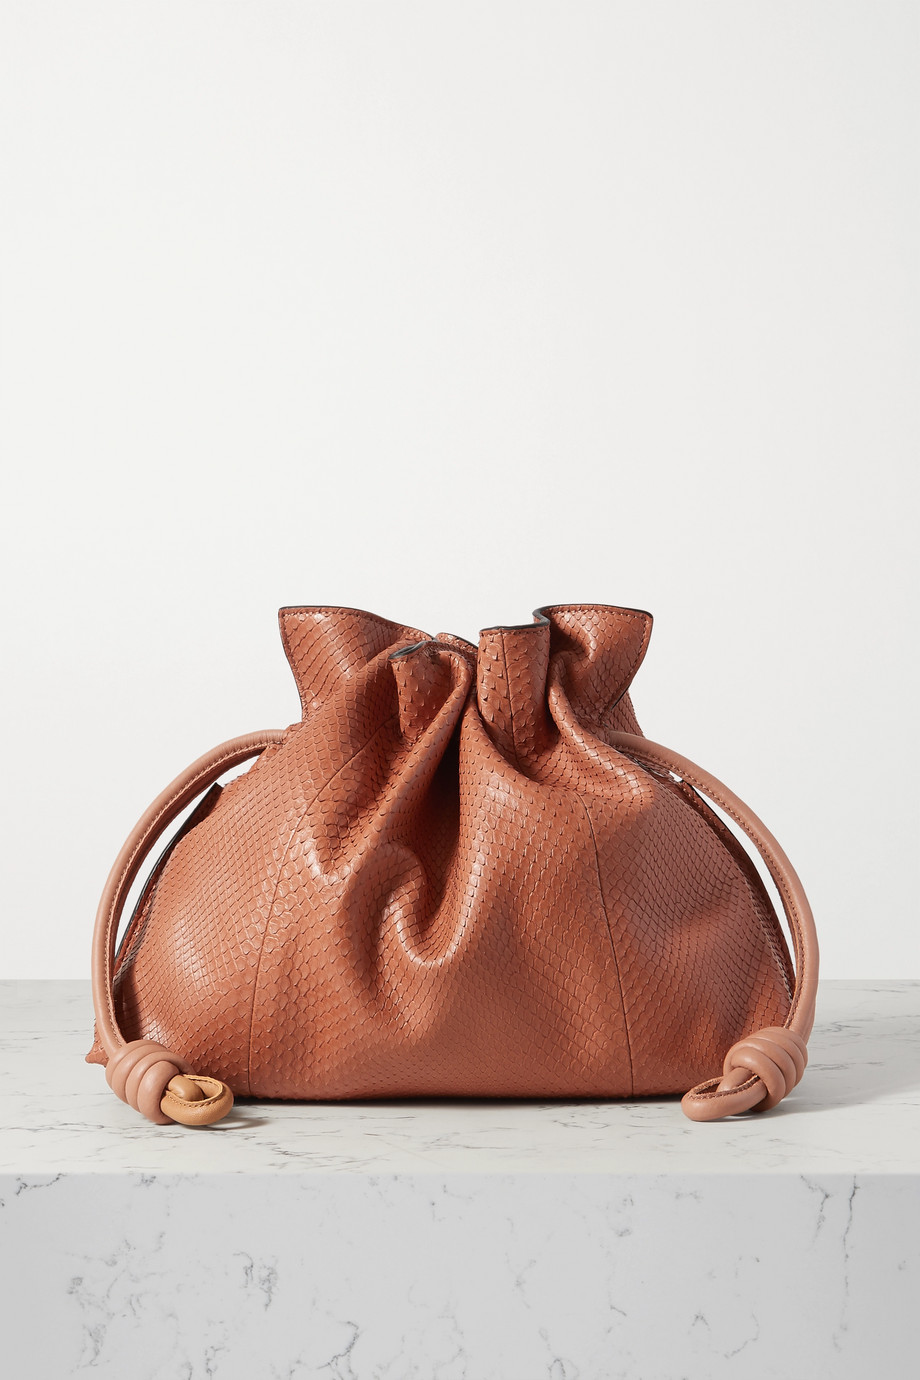 Loewe Flamenco leather-trimmed python clutch